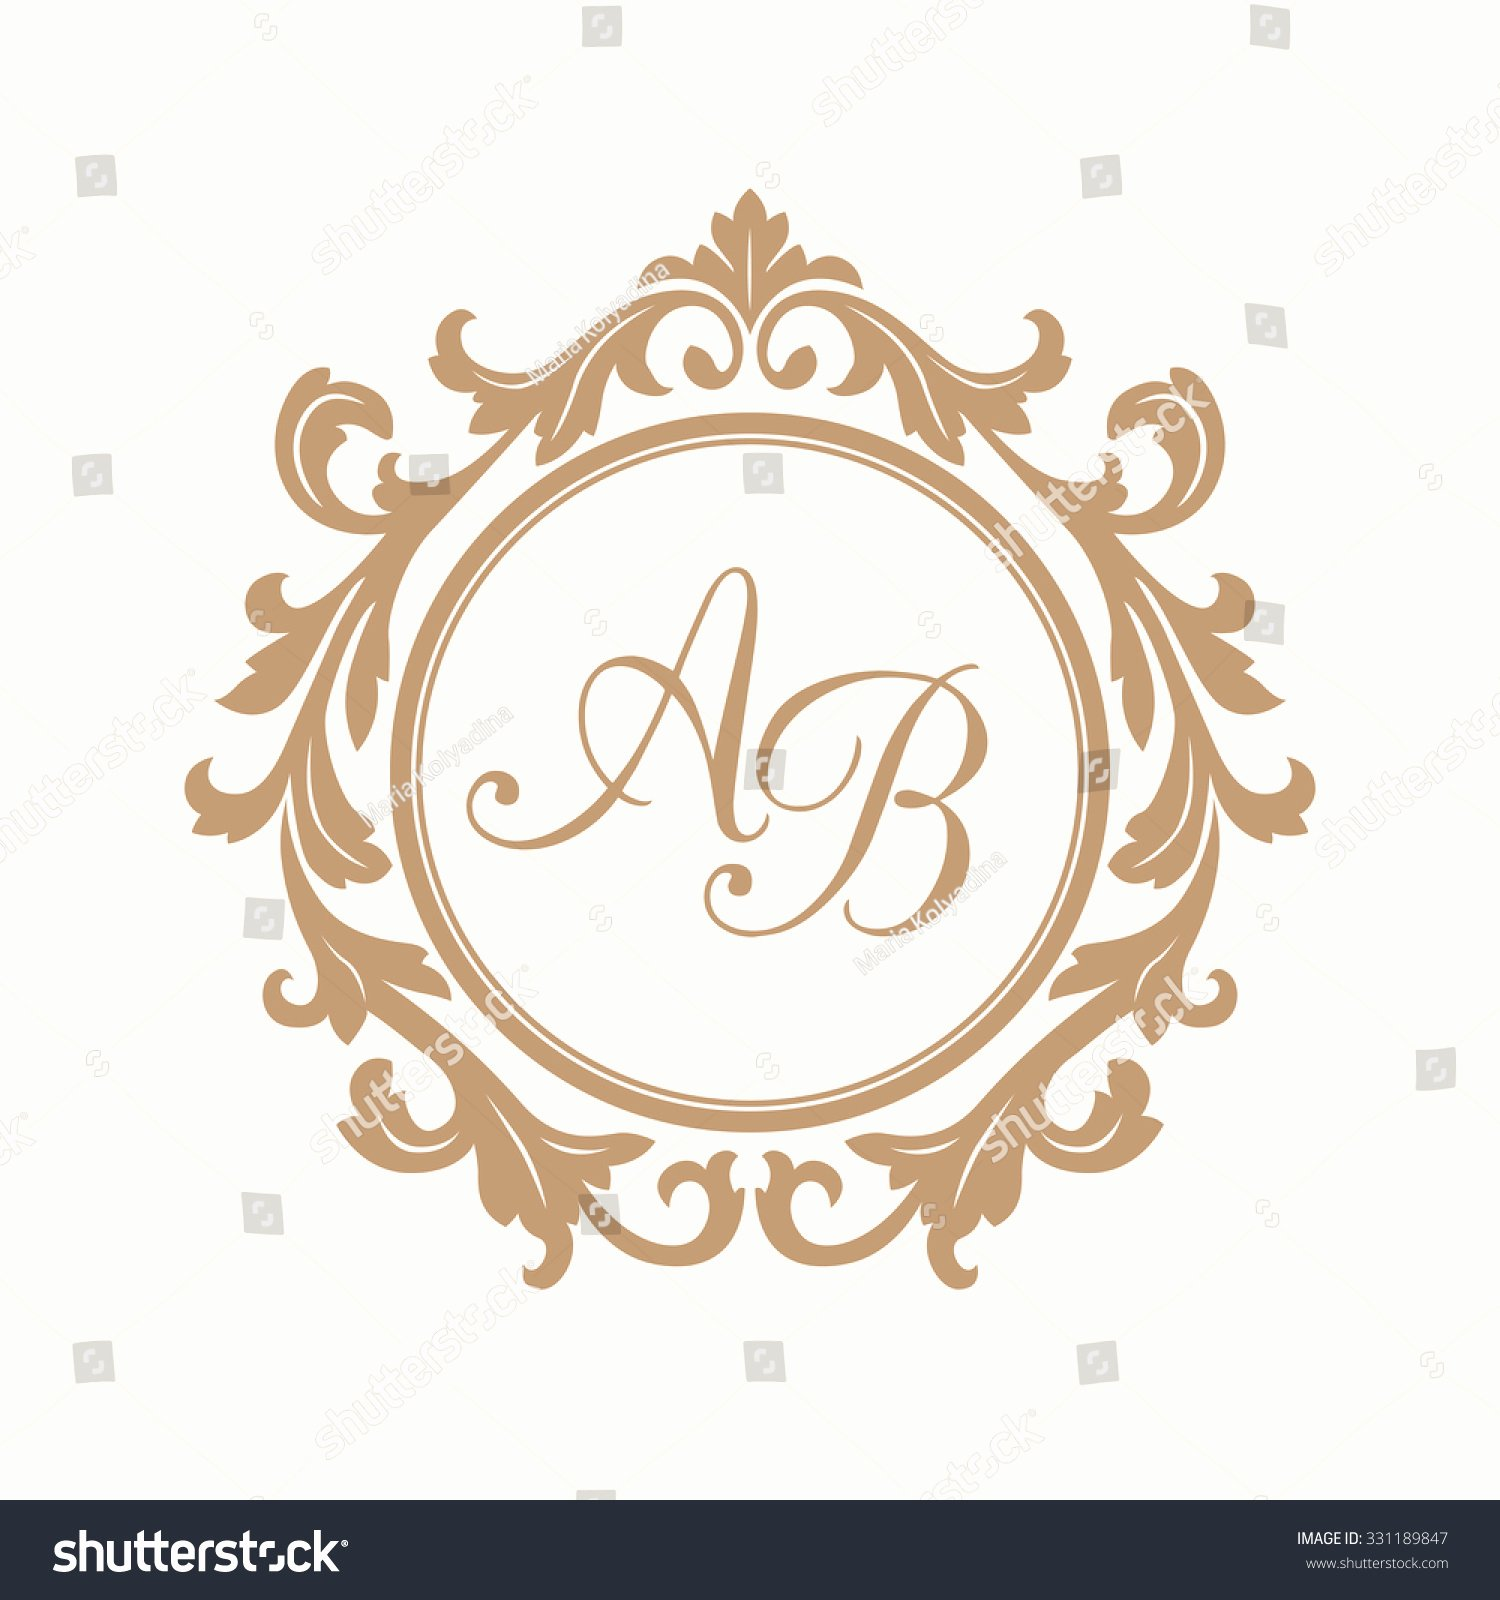 Free Wedding Monogram Template Inspirational Elegant Floral Monogram Design Template E Lager Vektor